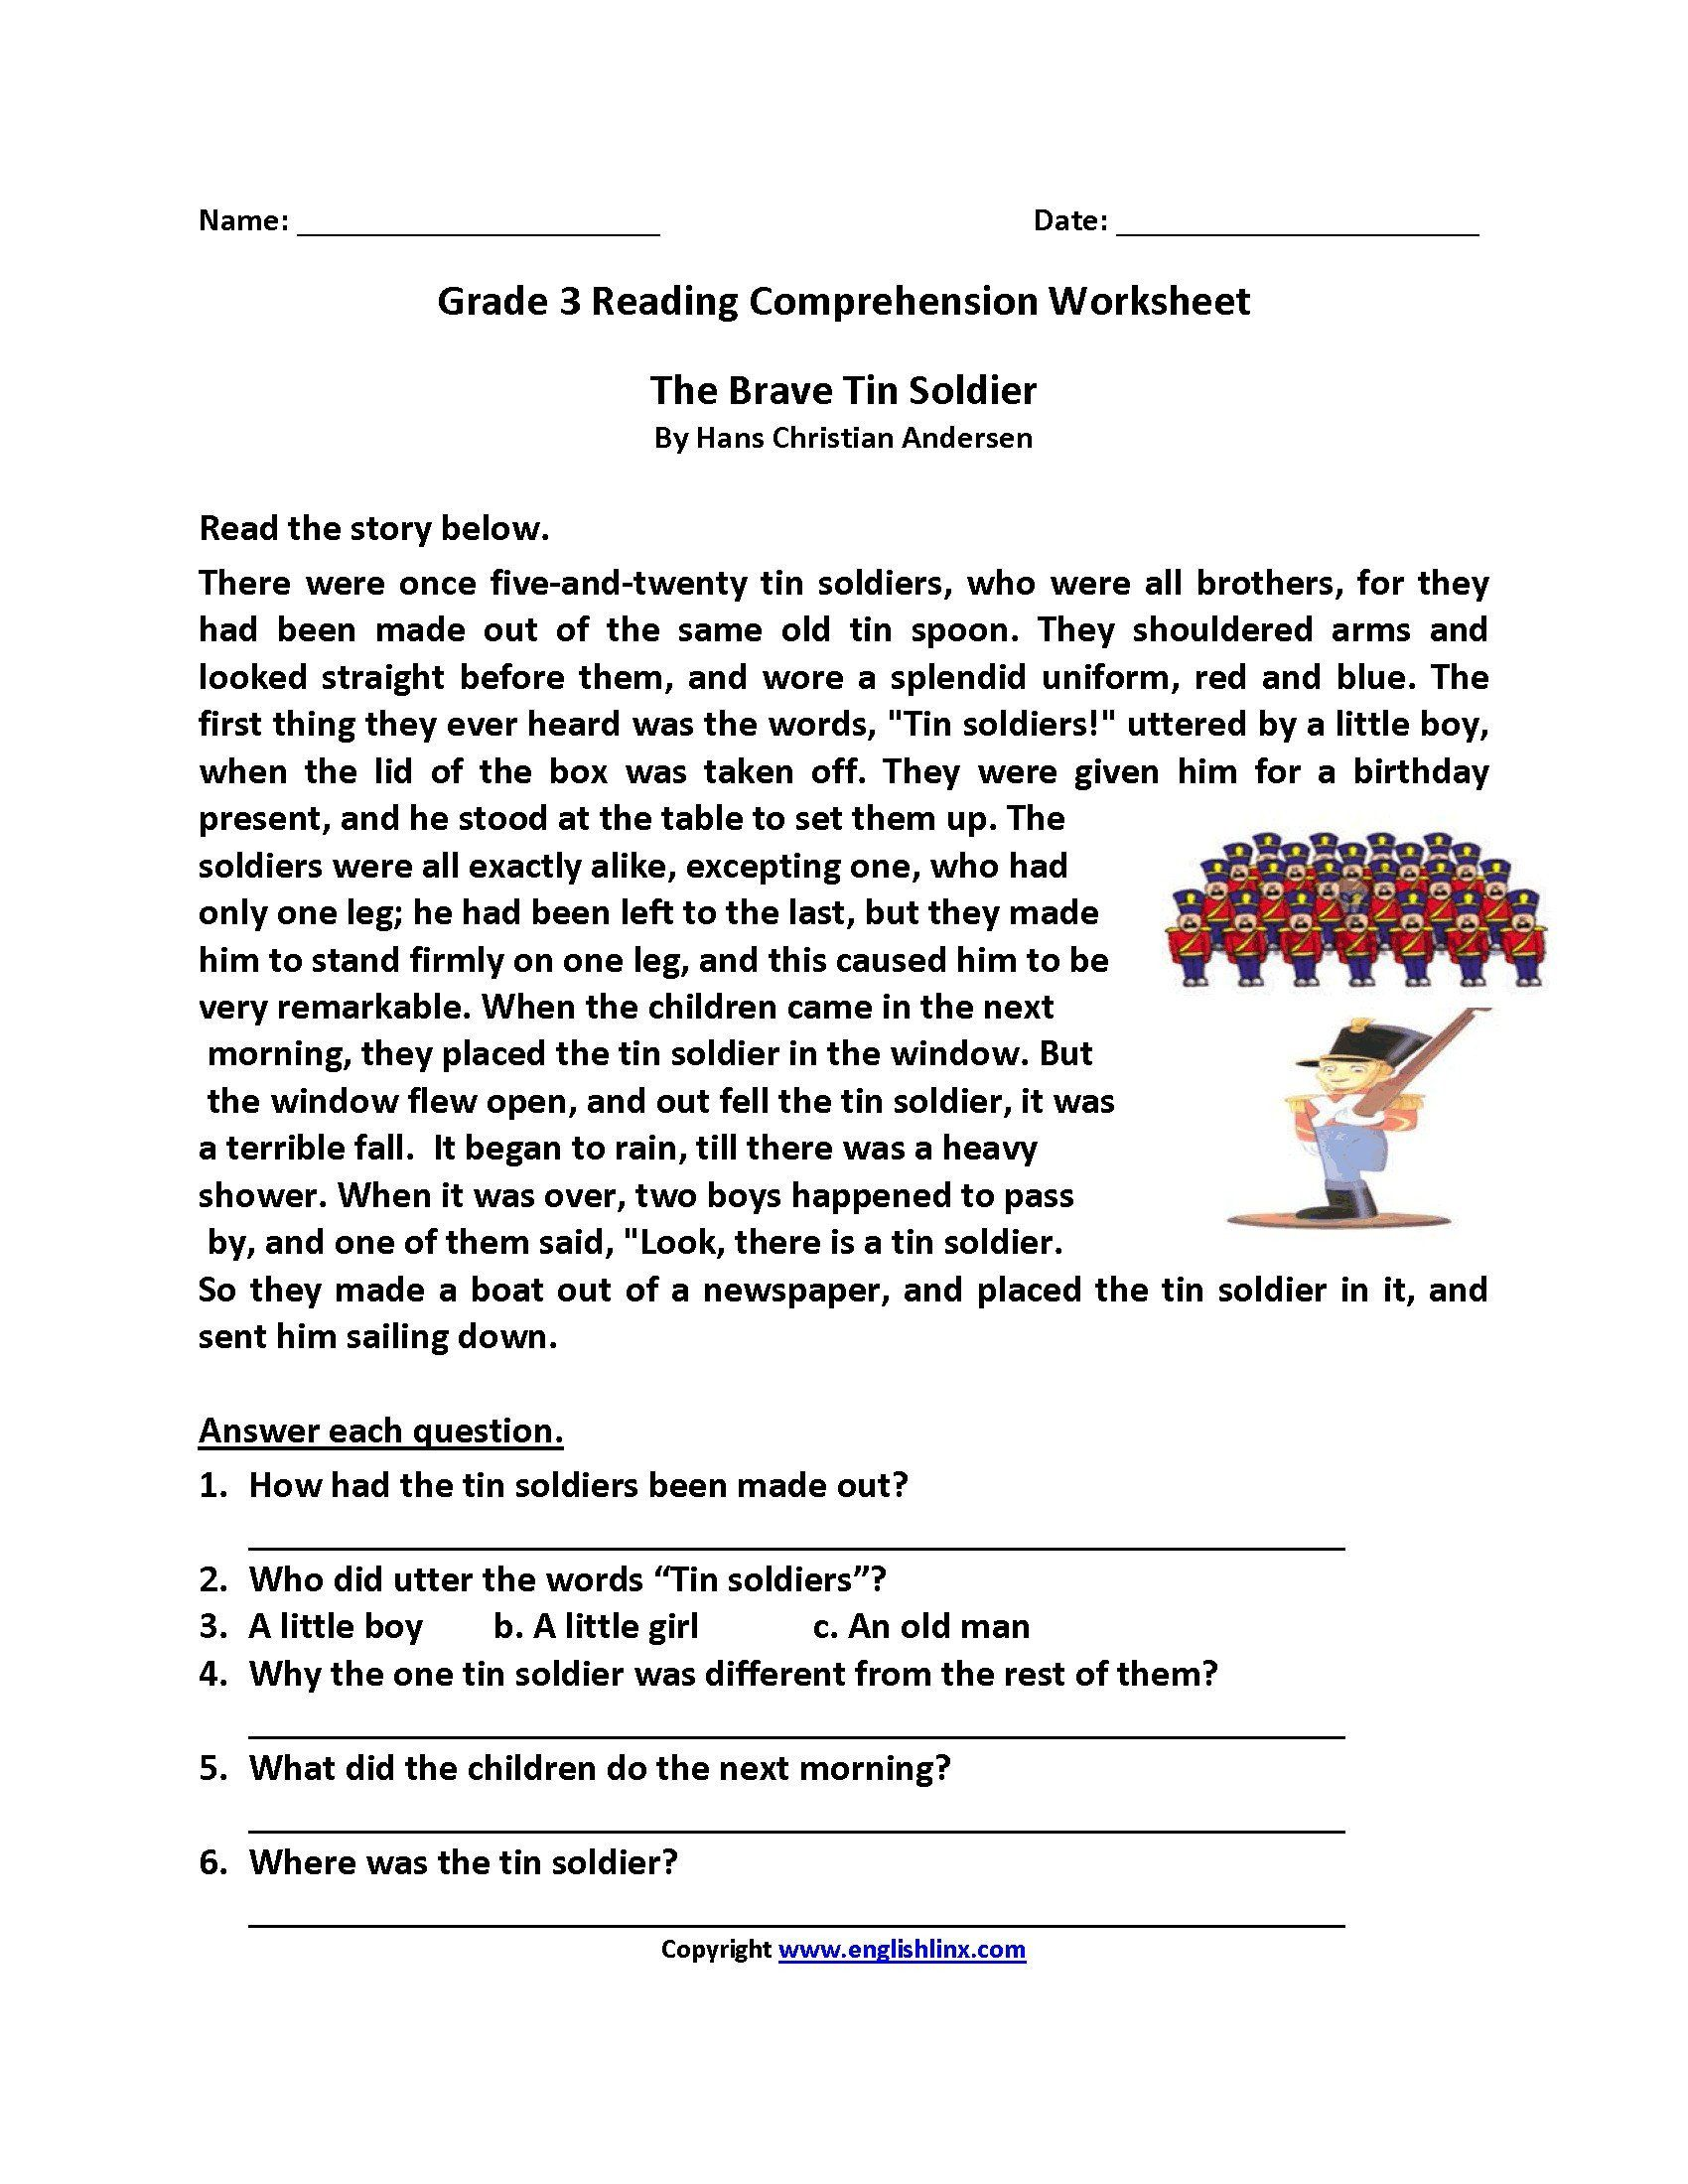 medium resolution of Drawing Conclusions Worksheets 2nd Grade Inference Worksheets 1st Gra…    2nd grade reading comprehension